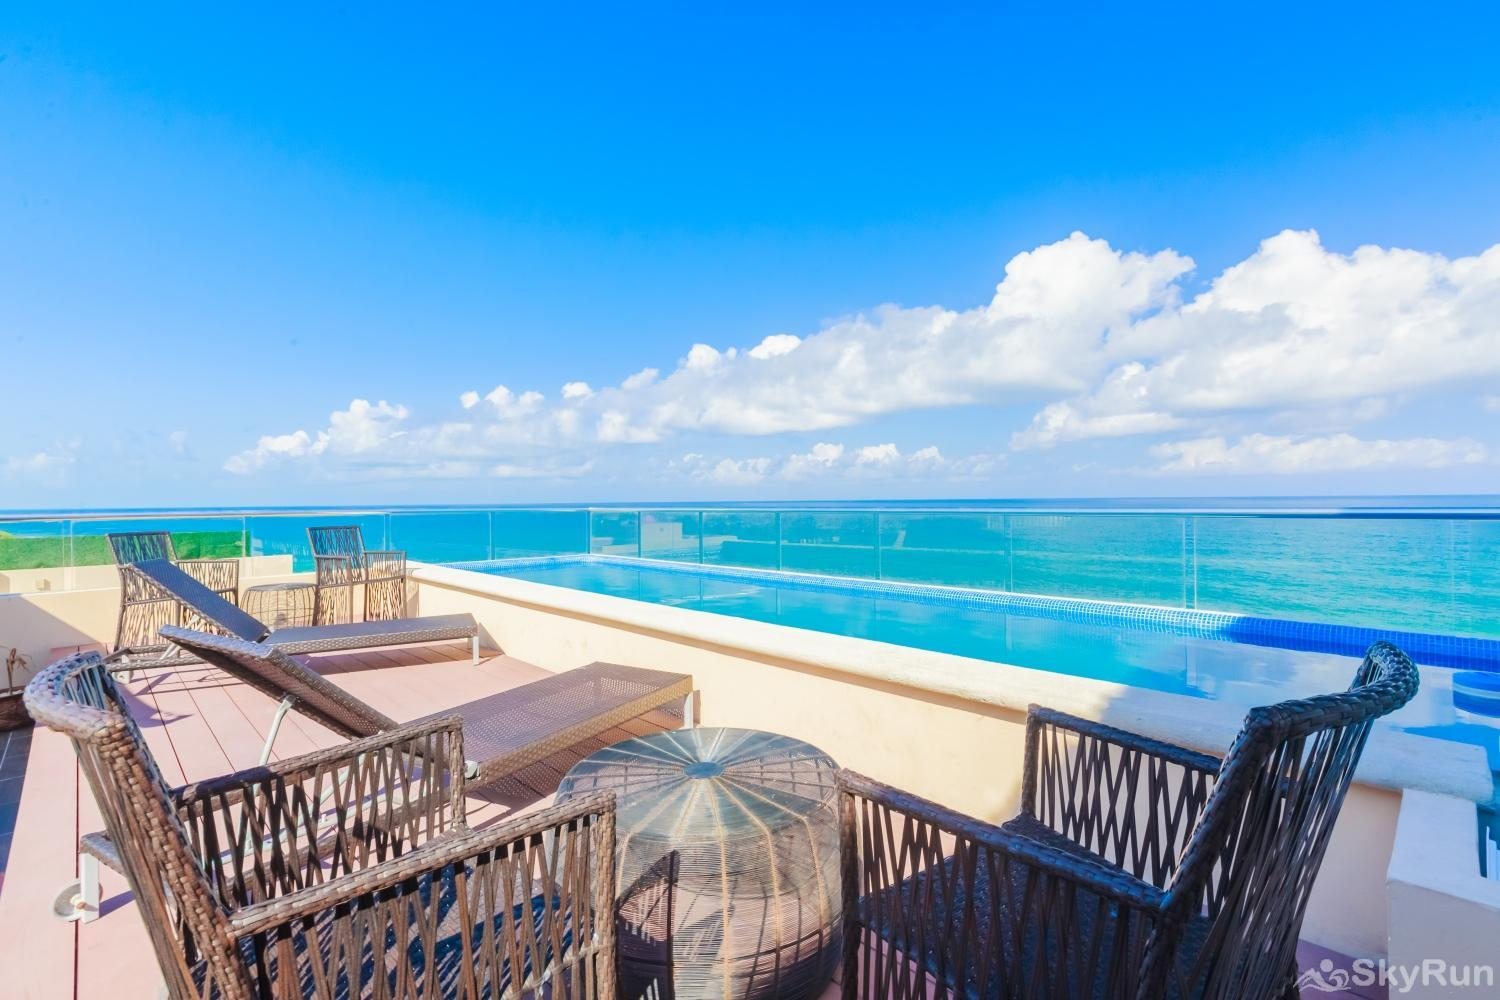 Oceanfront Penthouse | Isla Mujeres | Private Pool | Resort Amenities | Prime location | 3 bedroom | Oceanview Penthouse 3 bedroom with private pool and sky roof